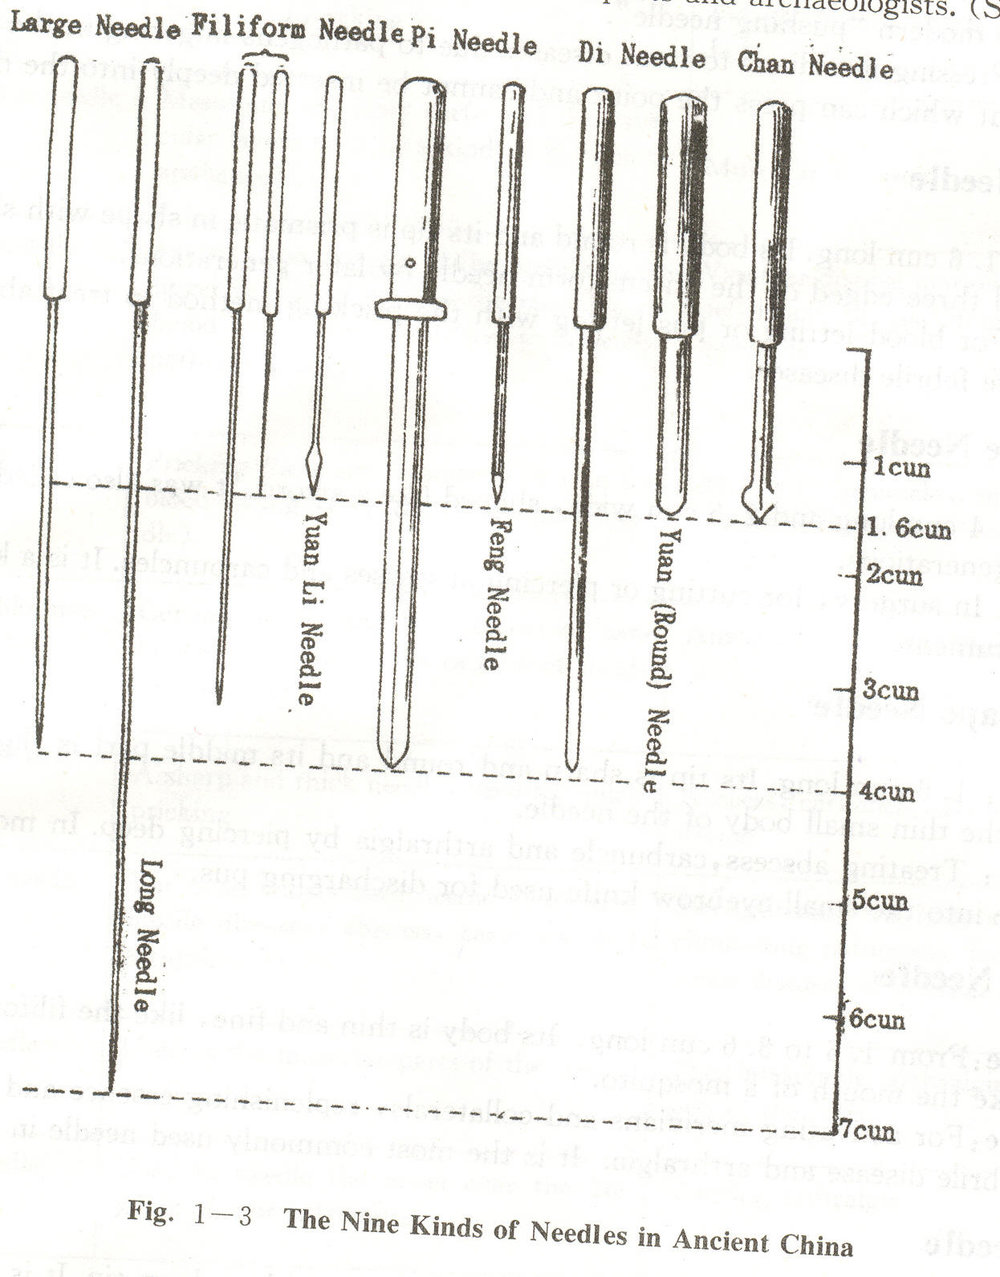 """The nine needles that were first describes in the Nei Jing, were tools that varied in length and diameter and used for different techniques. The Nei Jing states that these nine needles, """"have a relationship to yin and yang, and the four seasonal energies."""" Each needle has specific form to correspond to different conditions. """"The first needle, called chan zhen, superficially punctures the skin. The second needle, called yuan zhen, does not penetrate but instead massages acupoints on the flesh and muscles. The third needle, ti zhen, punctures the vessels. The fourth needle, feng zhen, punctures and draws blood from capillaries and small veins. The fifth needle, fei pi zhen, lances the skin to drain pus. The sixth needle, yuan li zhen, punctures the joints for Bi conditions. The seventh needle, hao zhen, punctures the acupoints on the flesh. The eighth needle, chang zhen, punctures deep fleshy locations. The ninth needle, da zhen, punctures the abdomen to relevive edema or masses. Choose these needles wisely for the appropriate occasion."""" (Ni 1995)"""